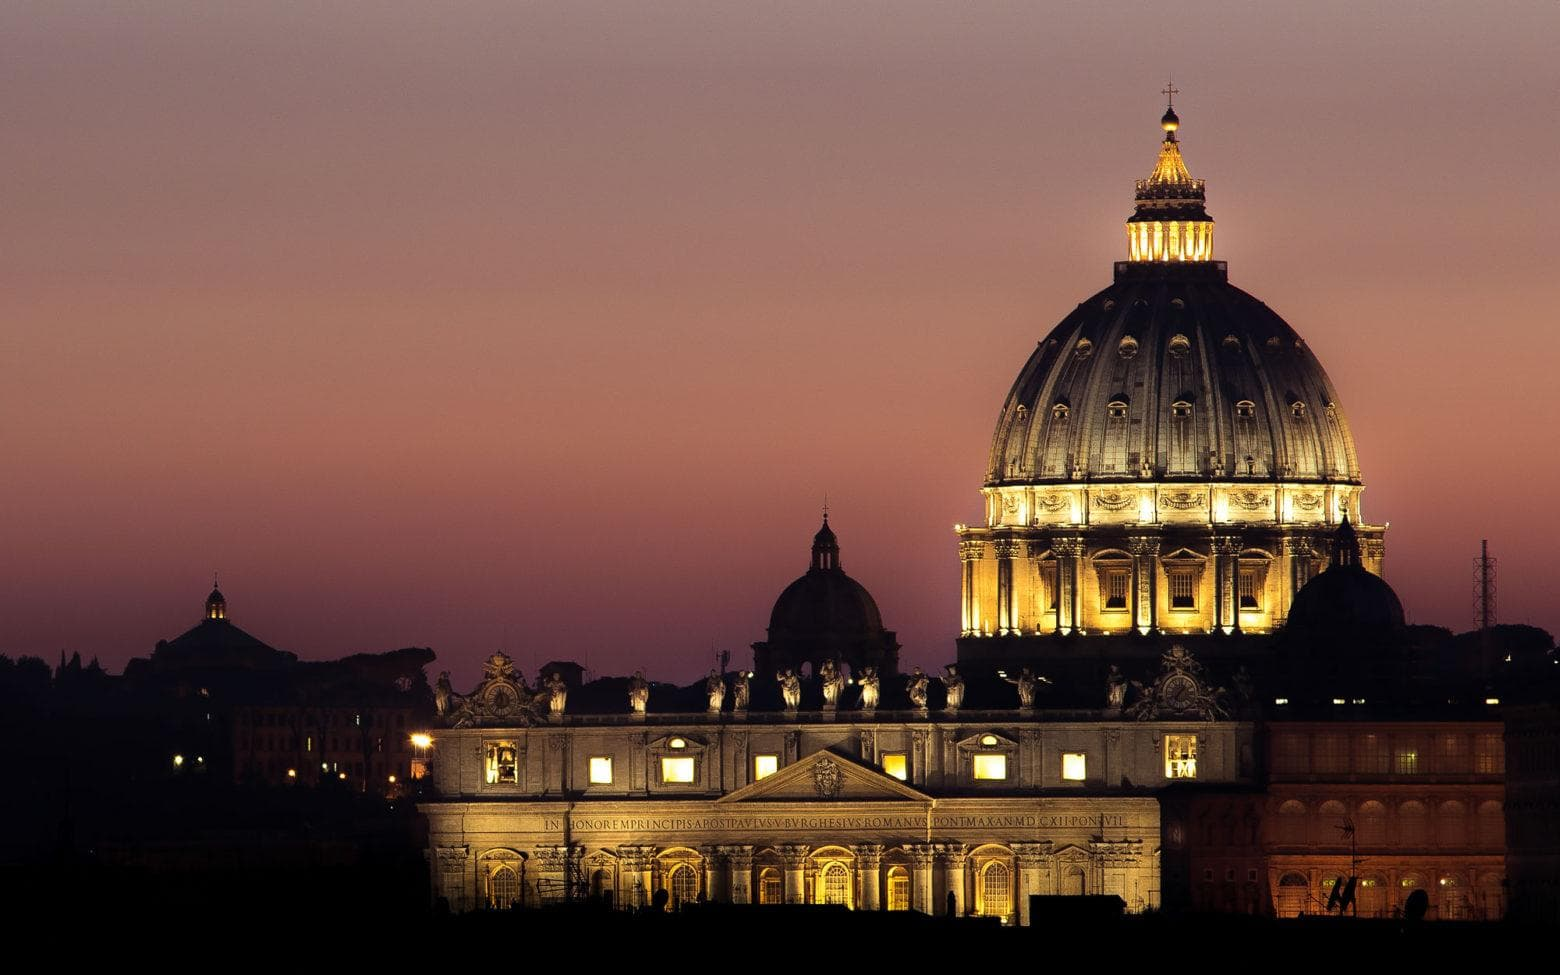 3 days in Rome itinerary day 3 - The Basilica of St.Peter